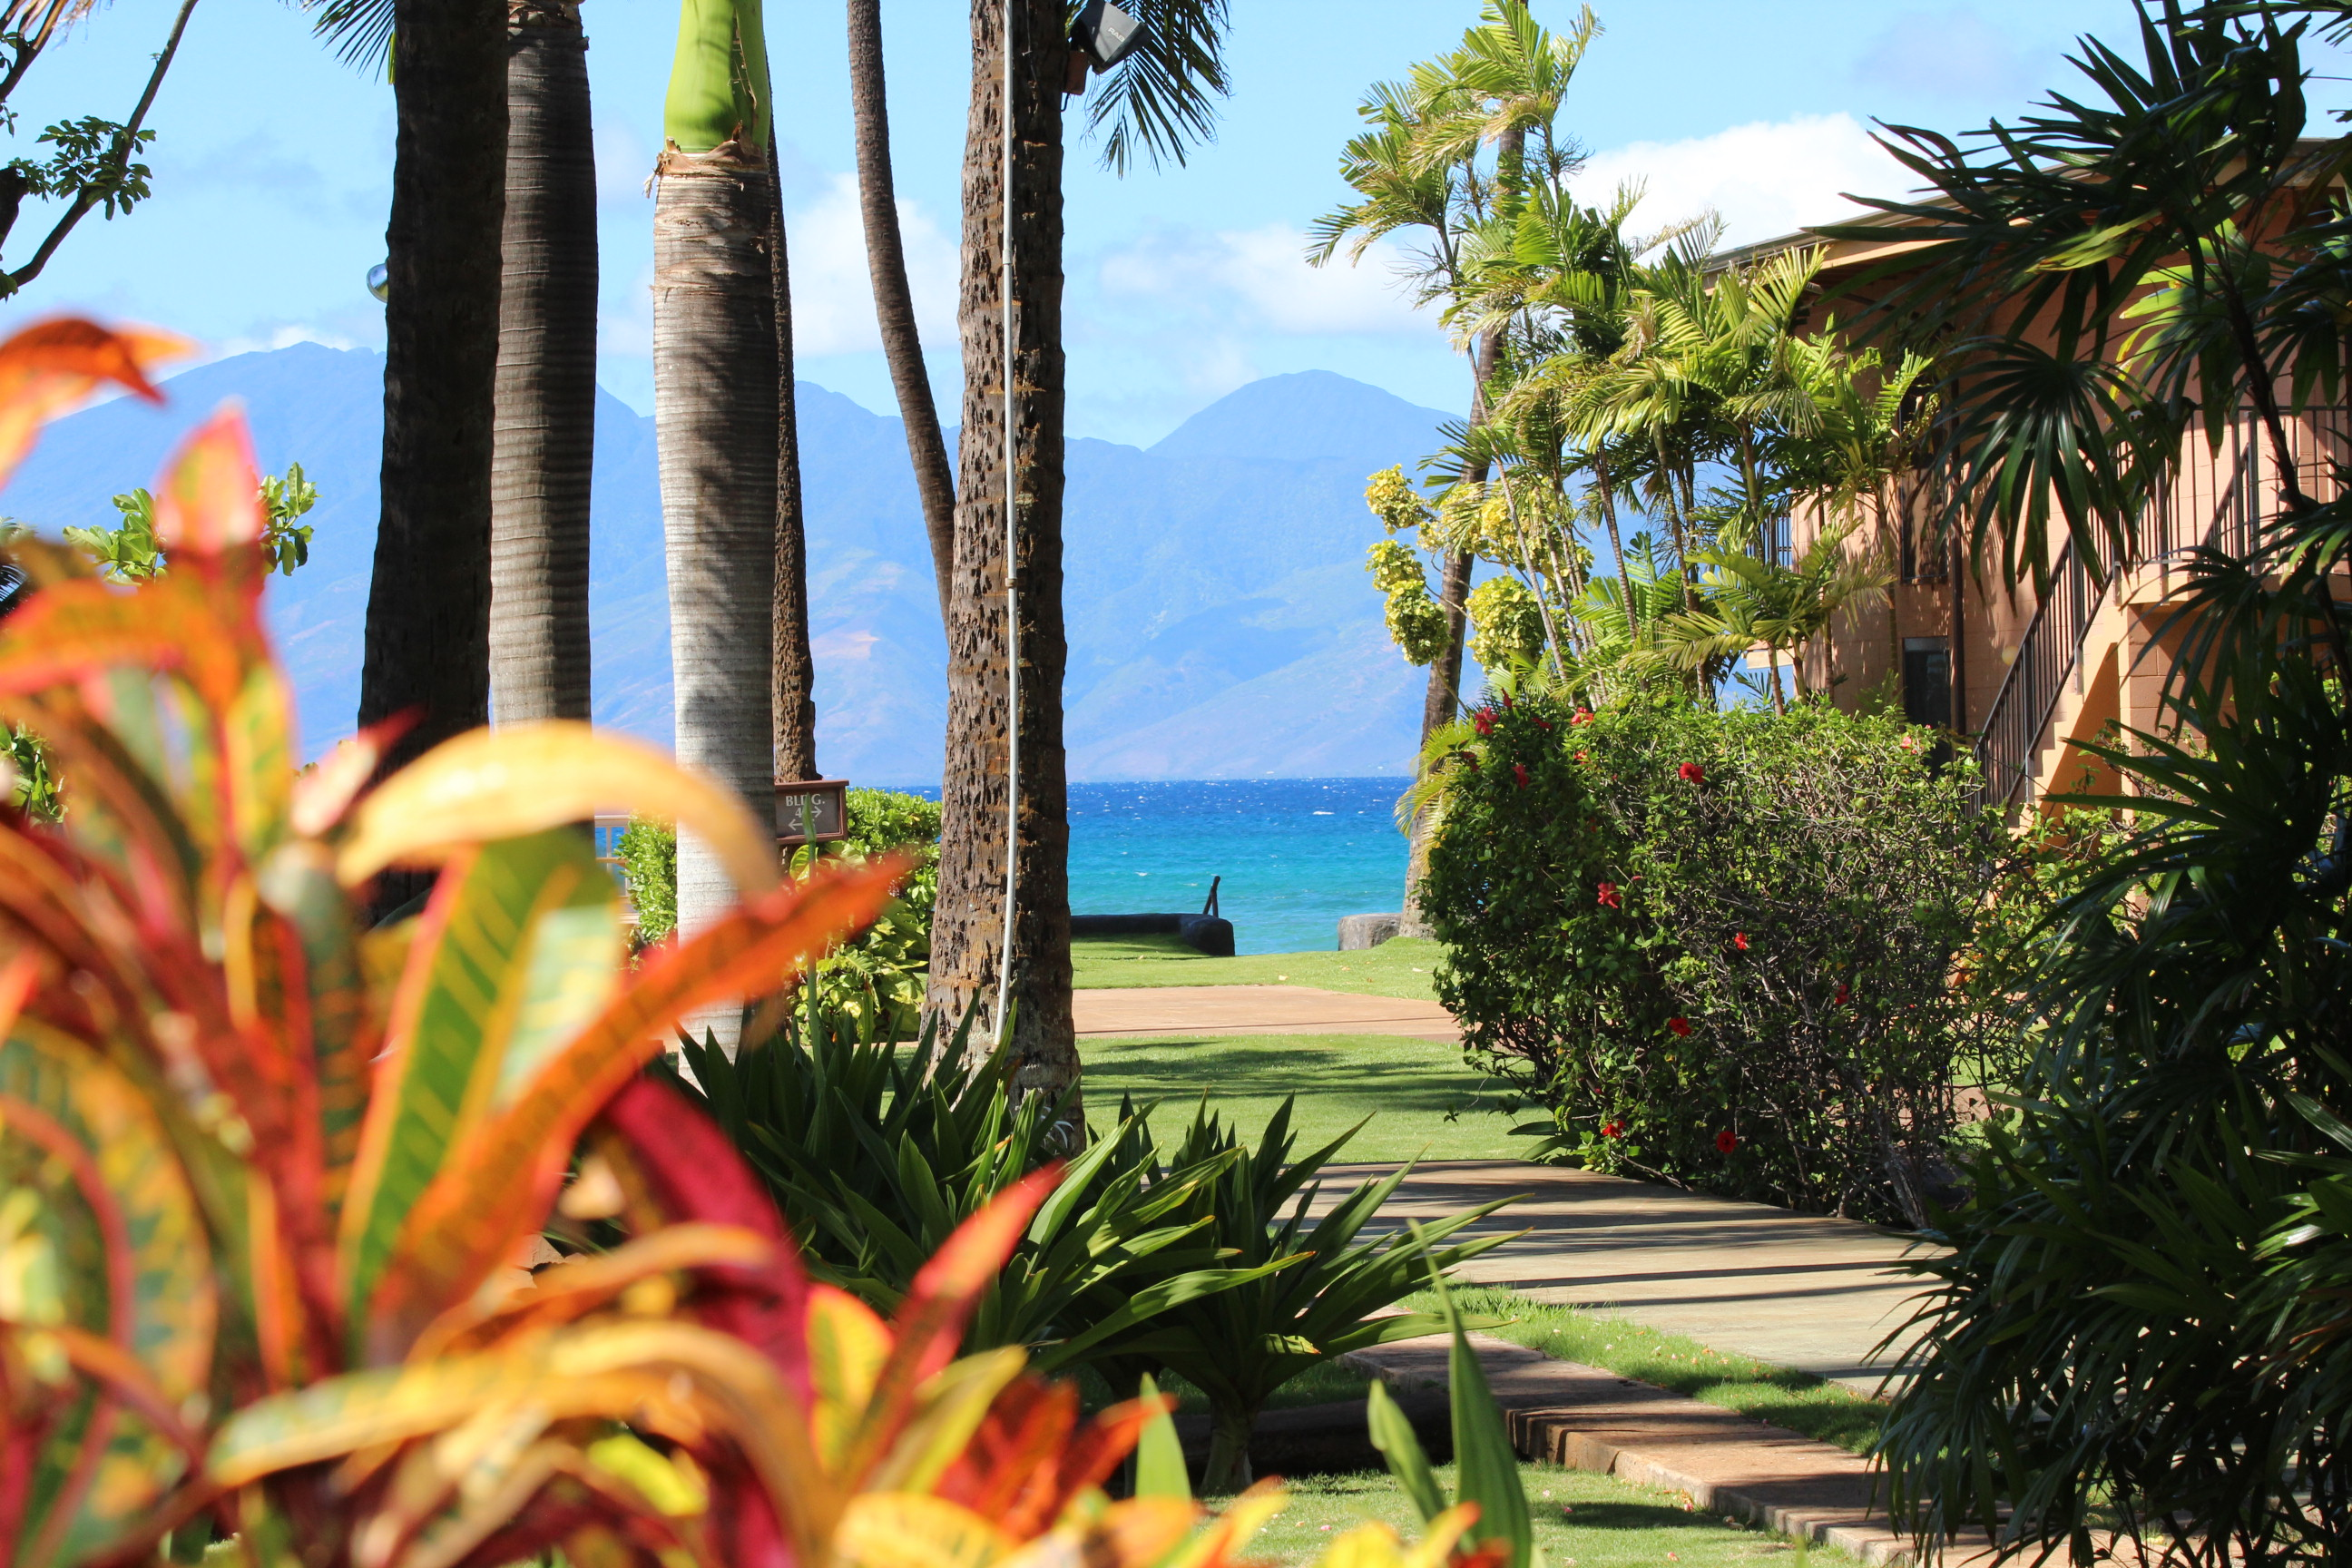 Image of the view from the yard at Maui Sands